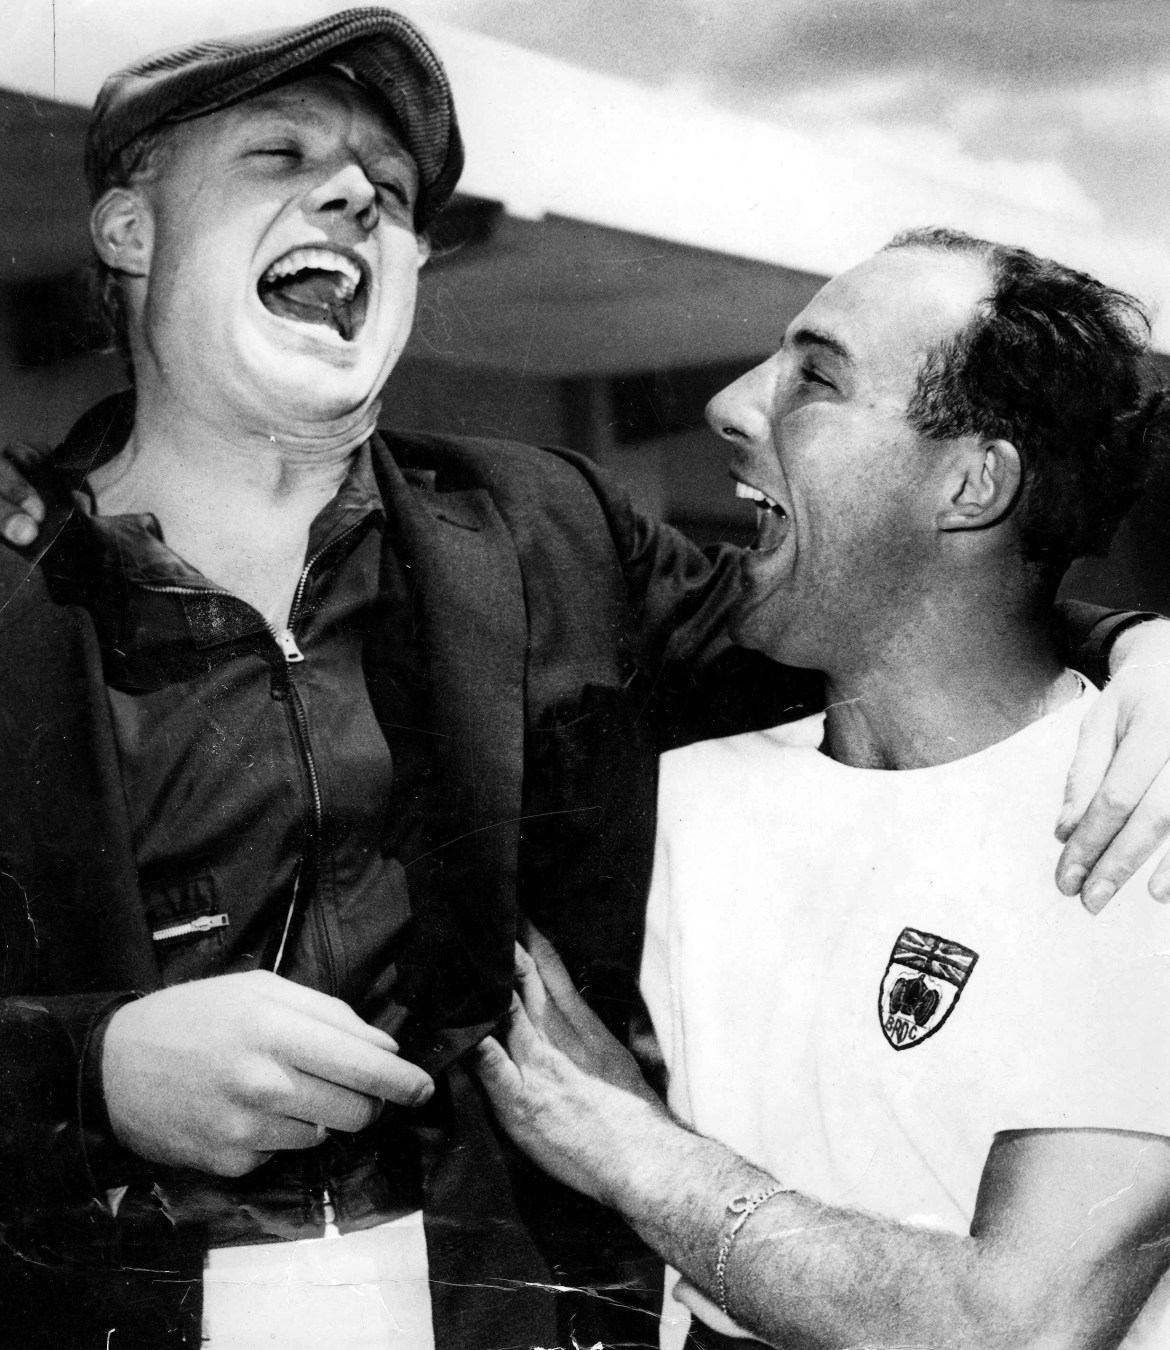 Moss famously lost the F1 title in 1958 to fellow Brit Mike Hawthorn when he ensured his rival was not disqualified from the Portuguese GP